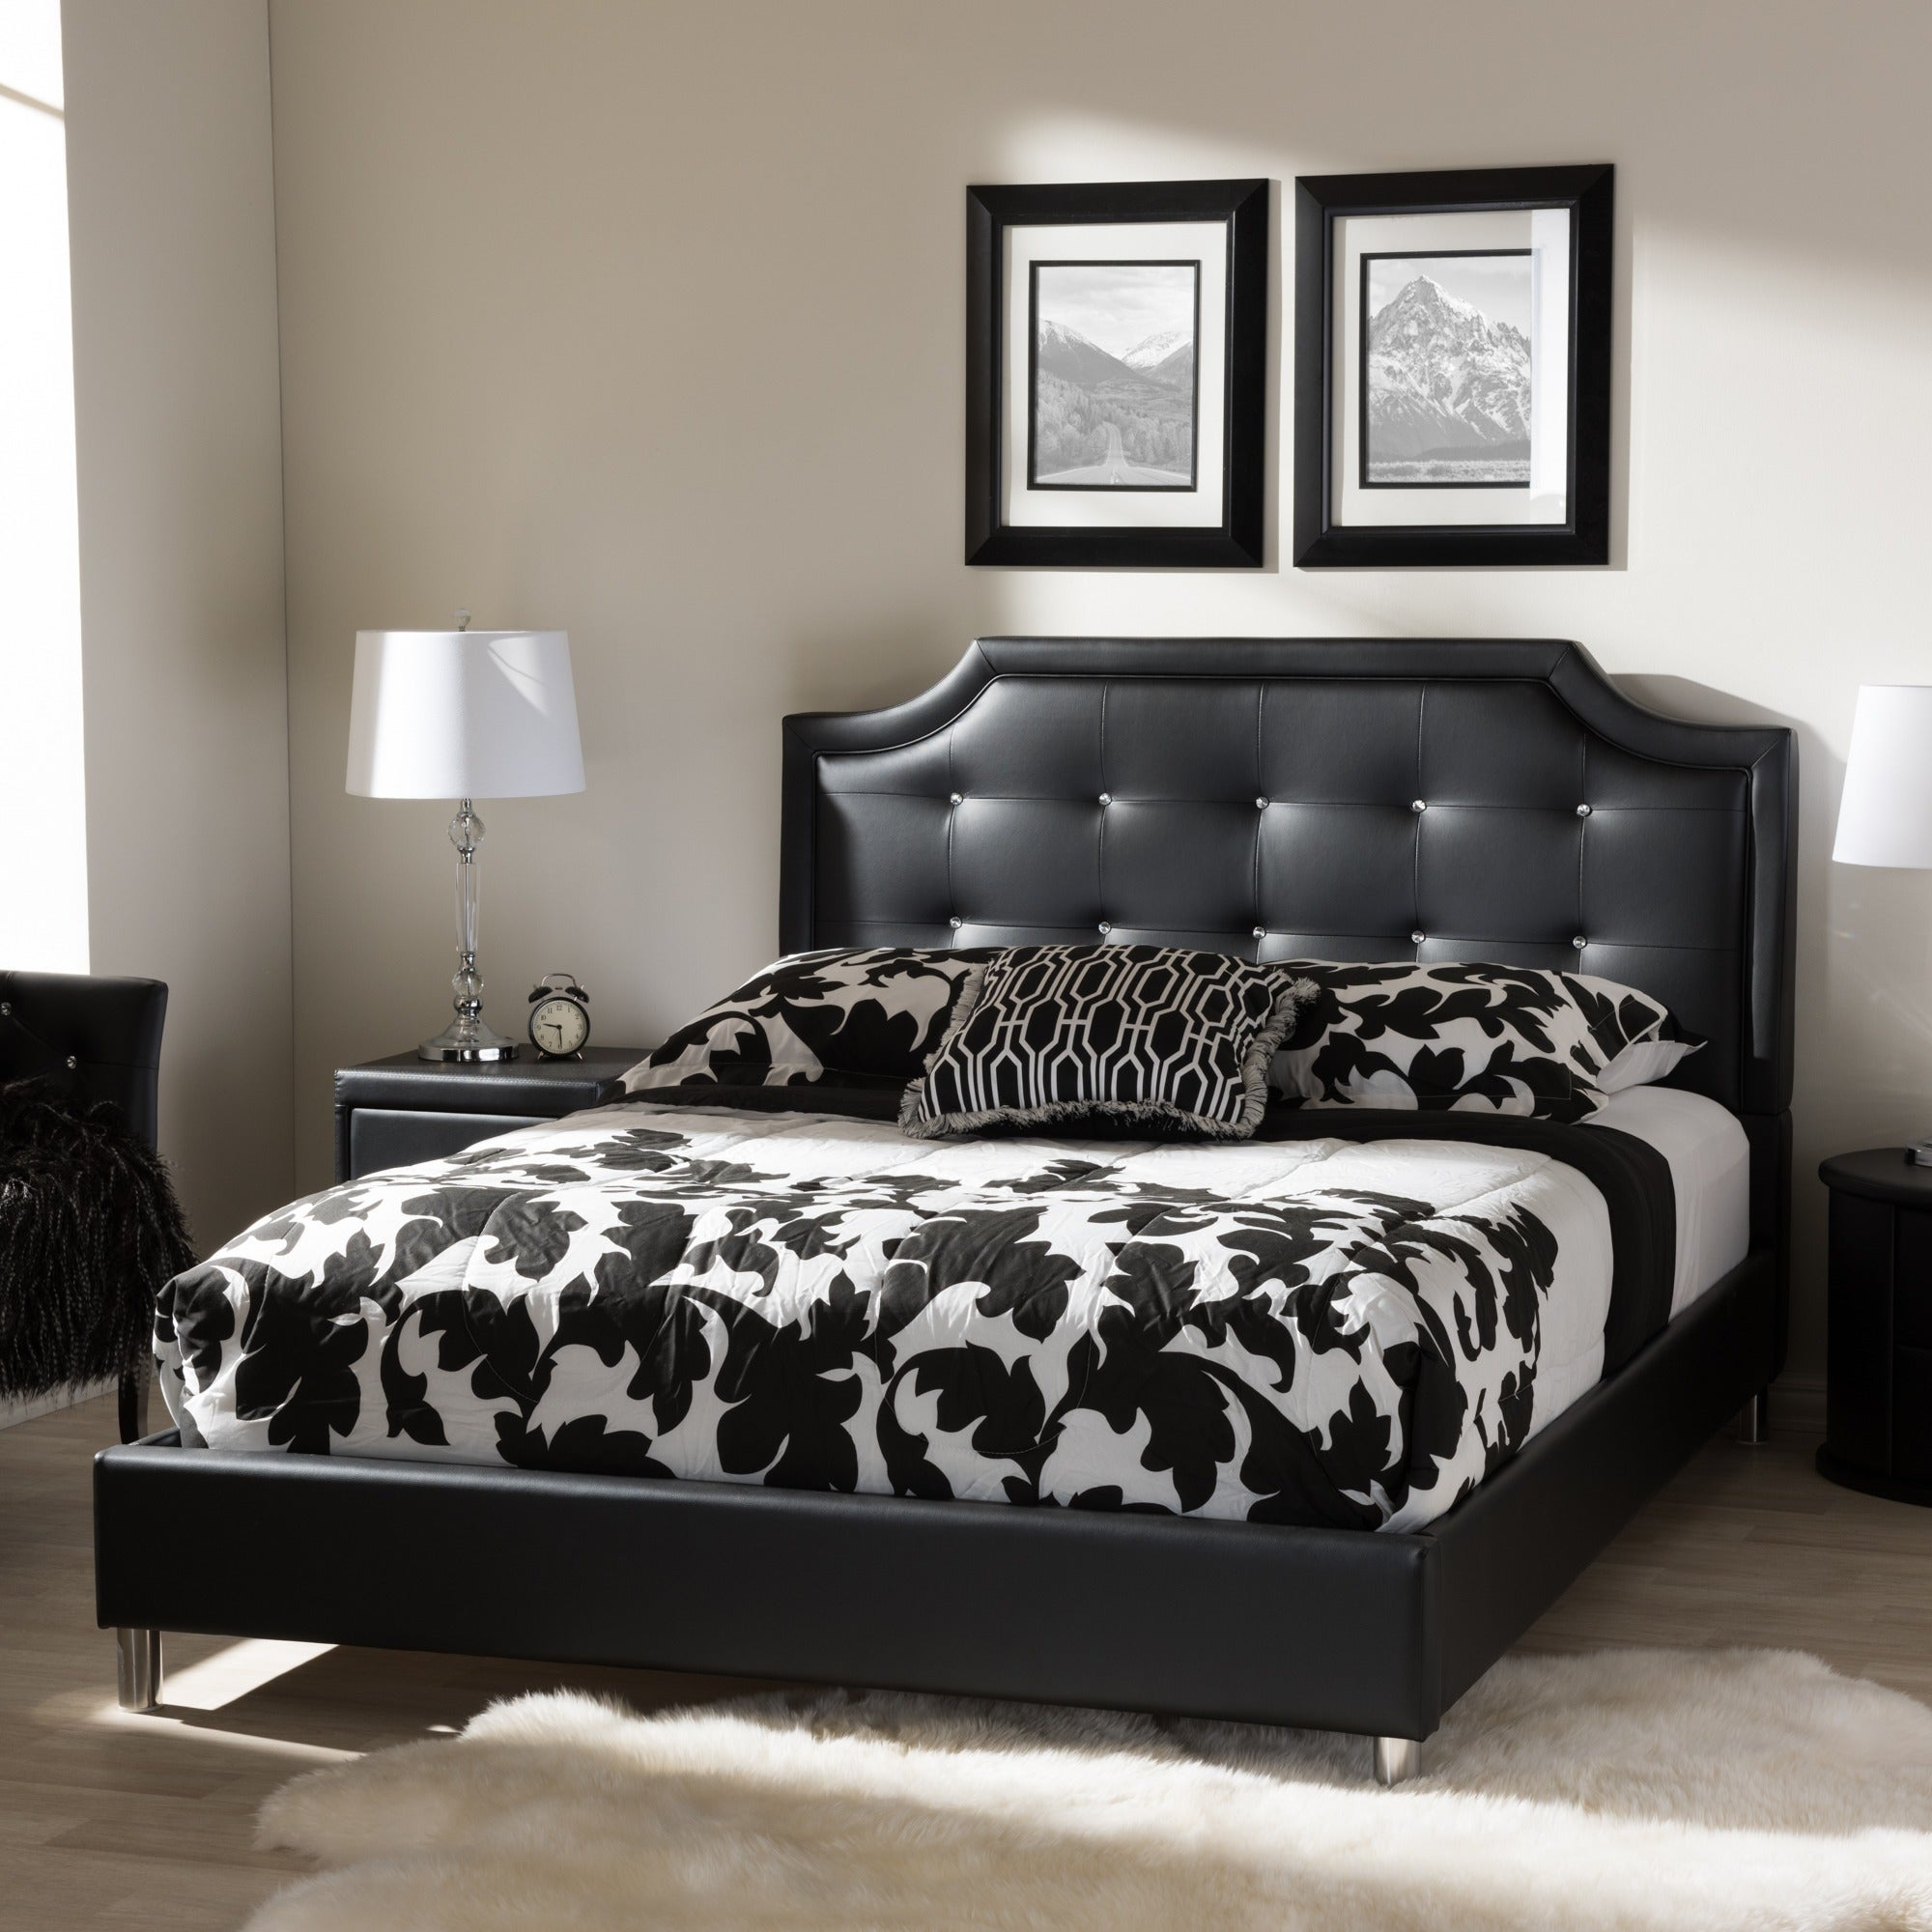 Baxton Studio Carlotta Modern Black Faux Leather Platform Bed With Upholstered Headboard